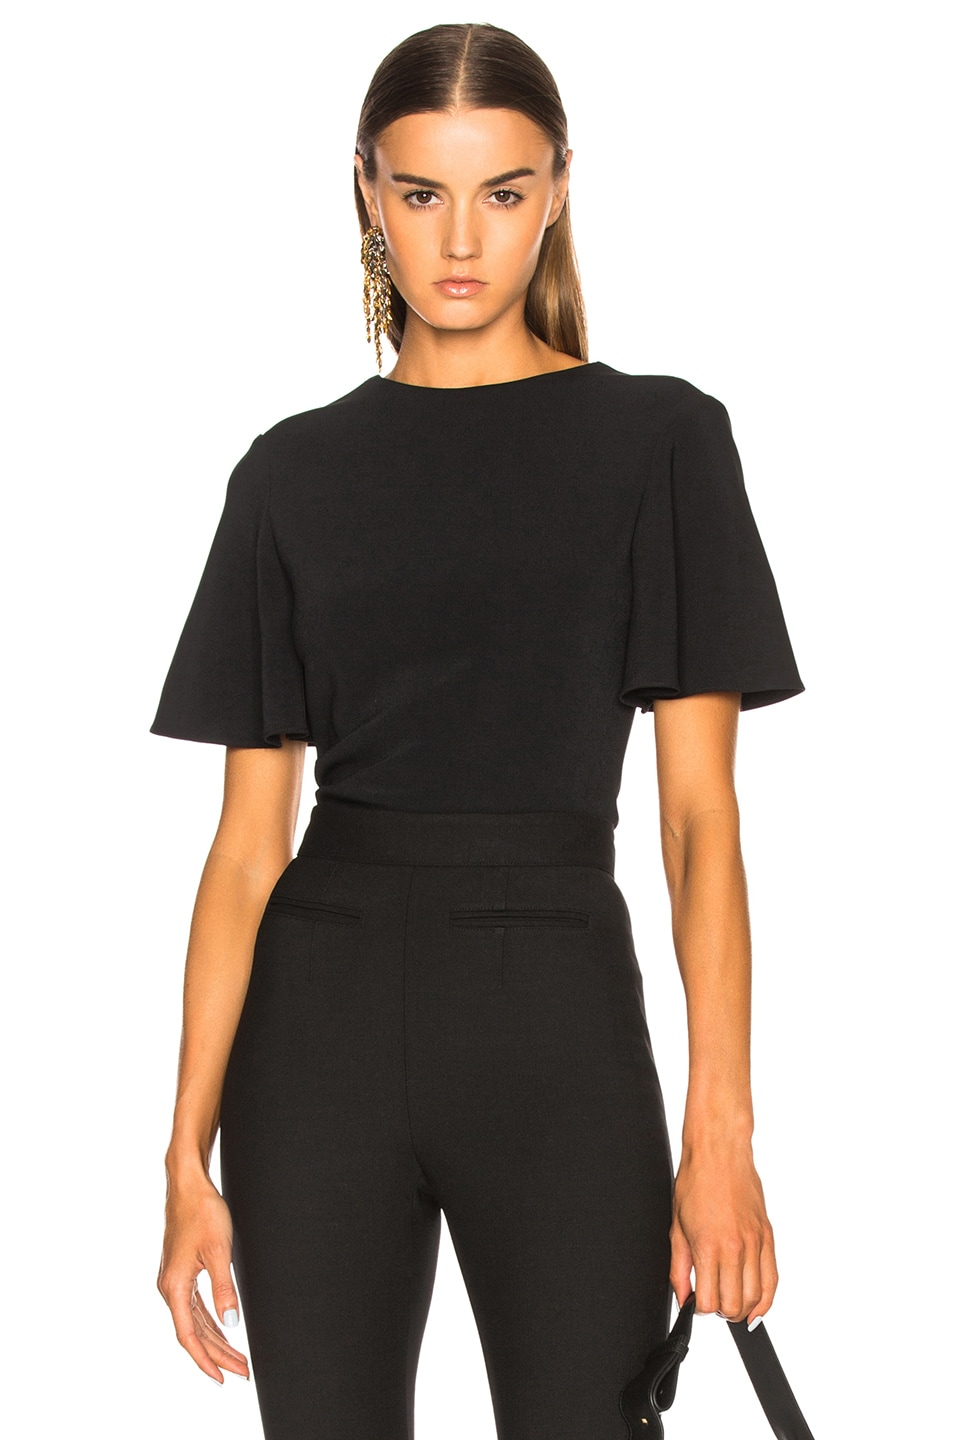 BRANDON MAXWELL LOW BACK BLOUSE IN BLACK